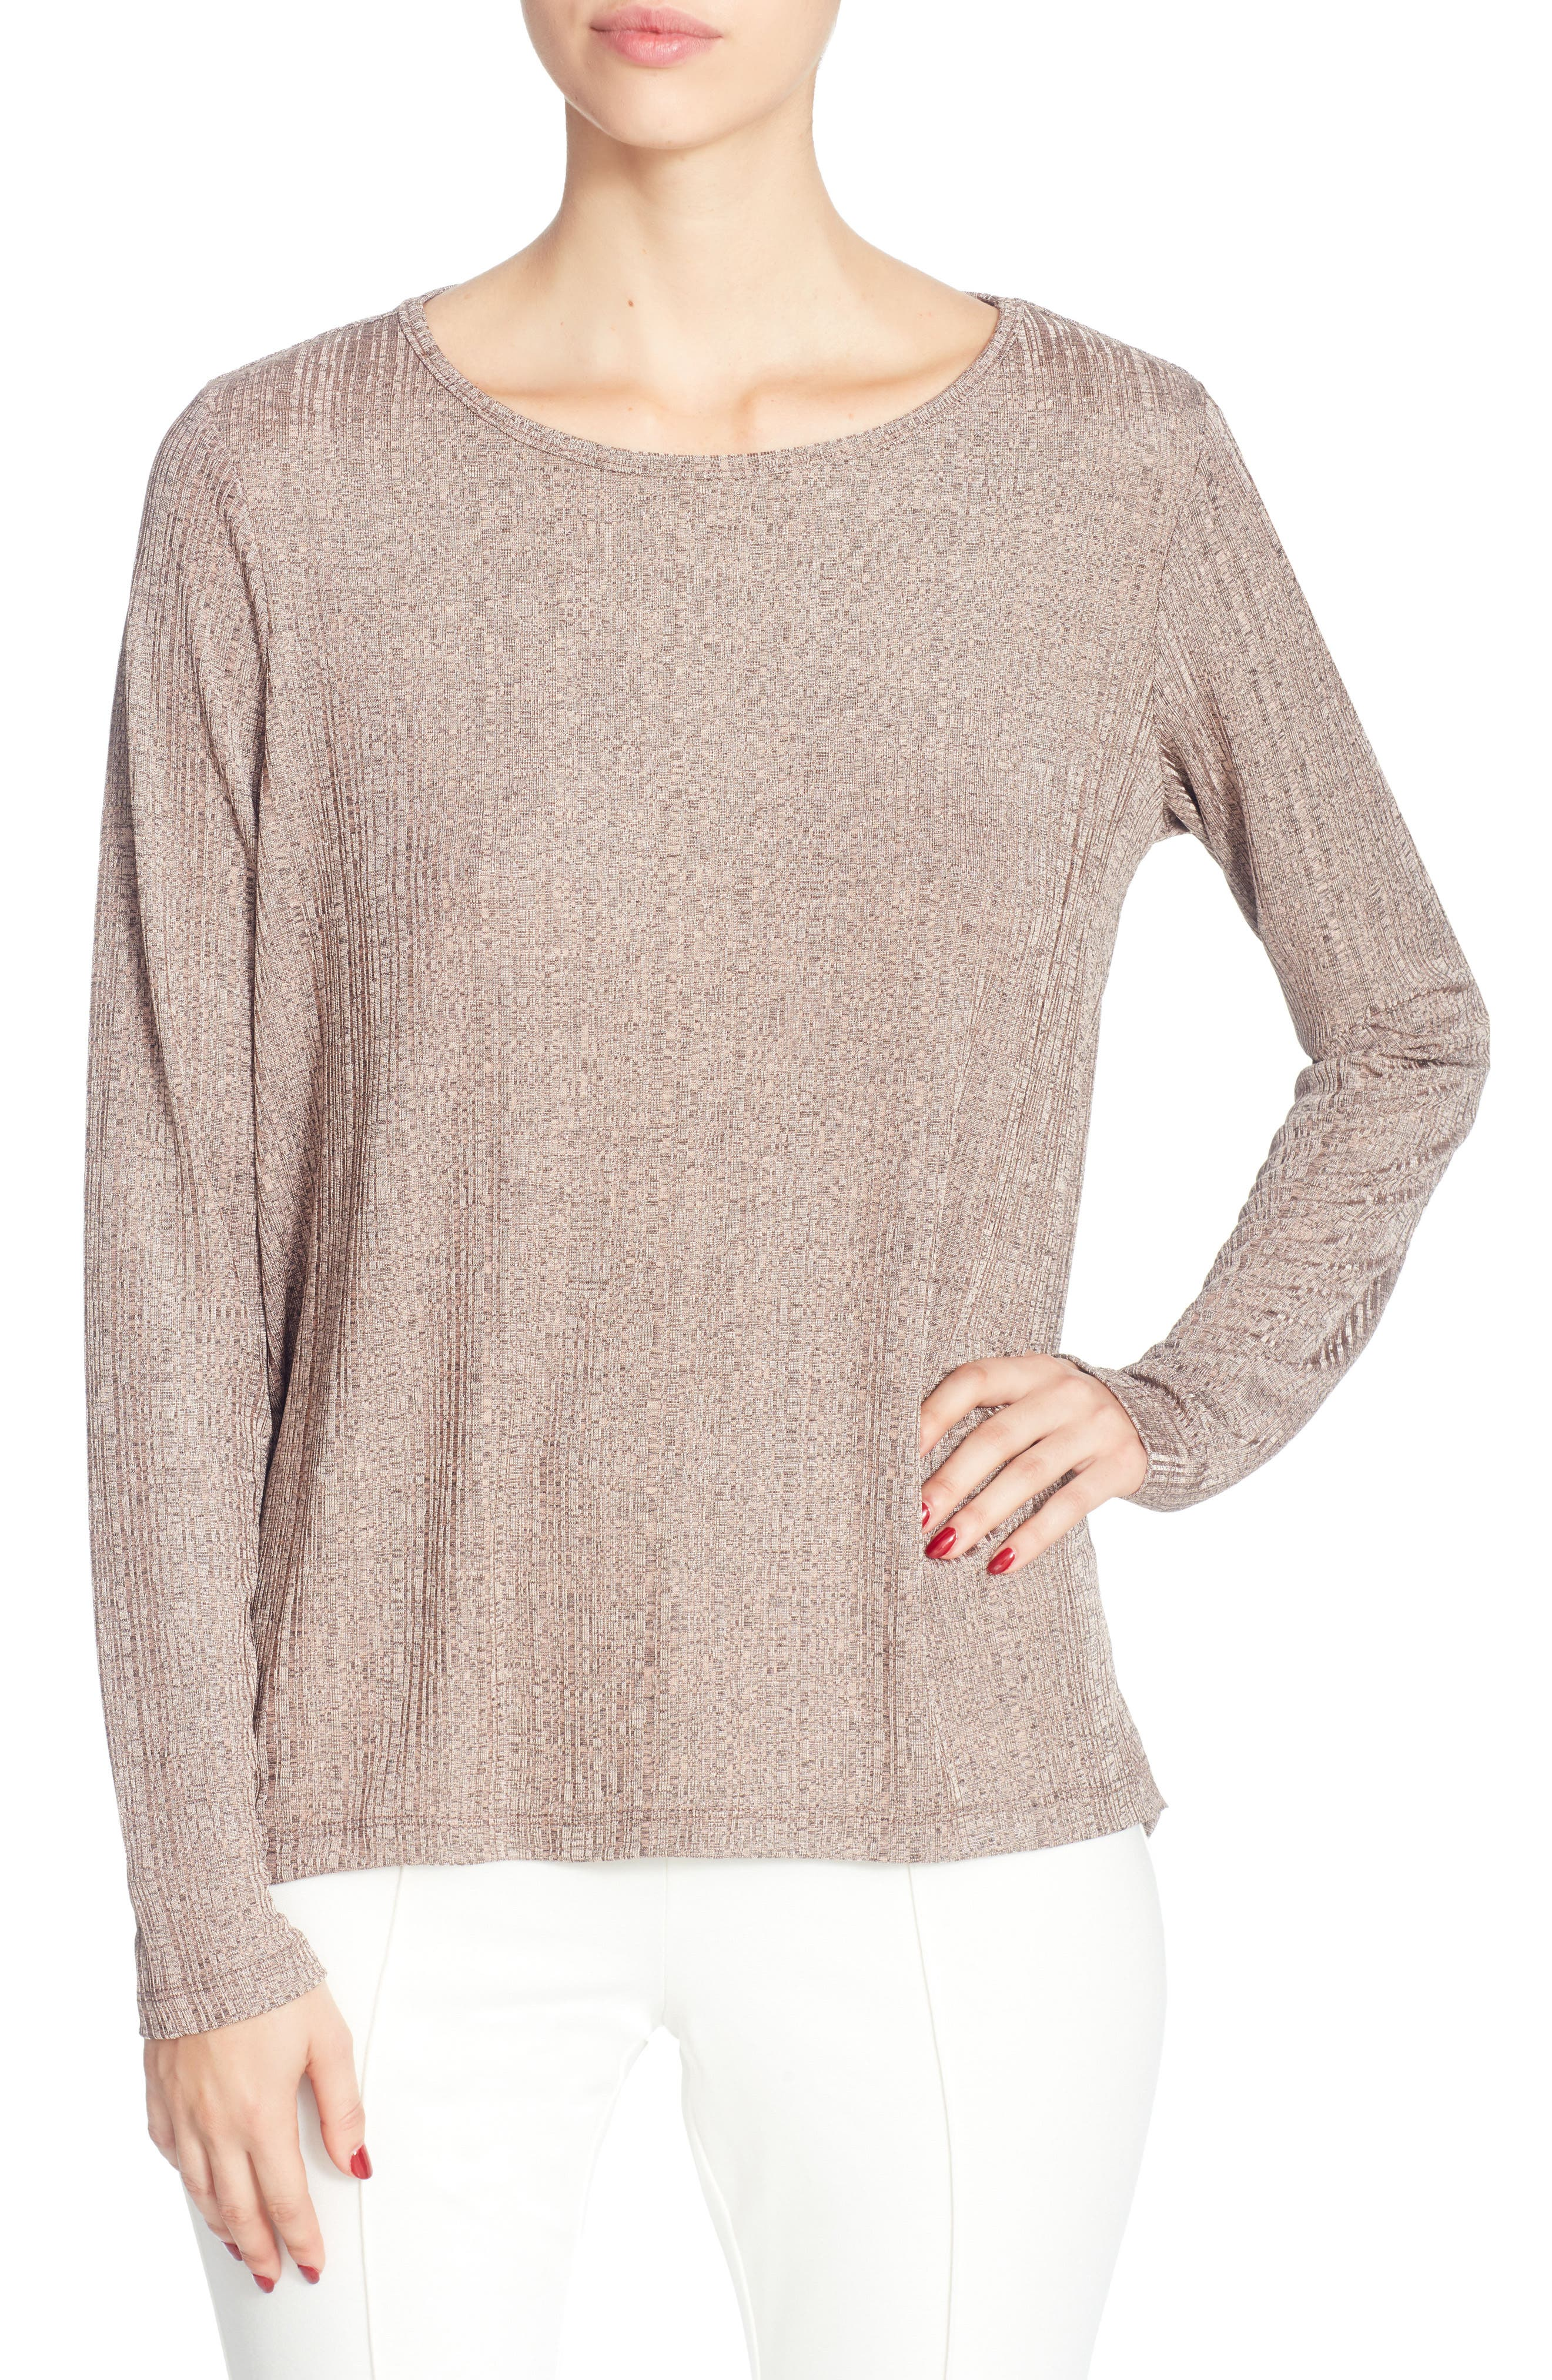 Alternate Image 1 Selected - Catherine Catherine Malandrino Remi Metallic Knit Top